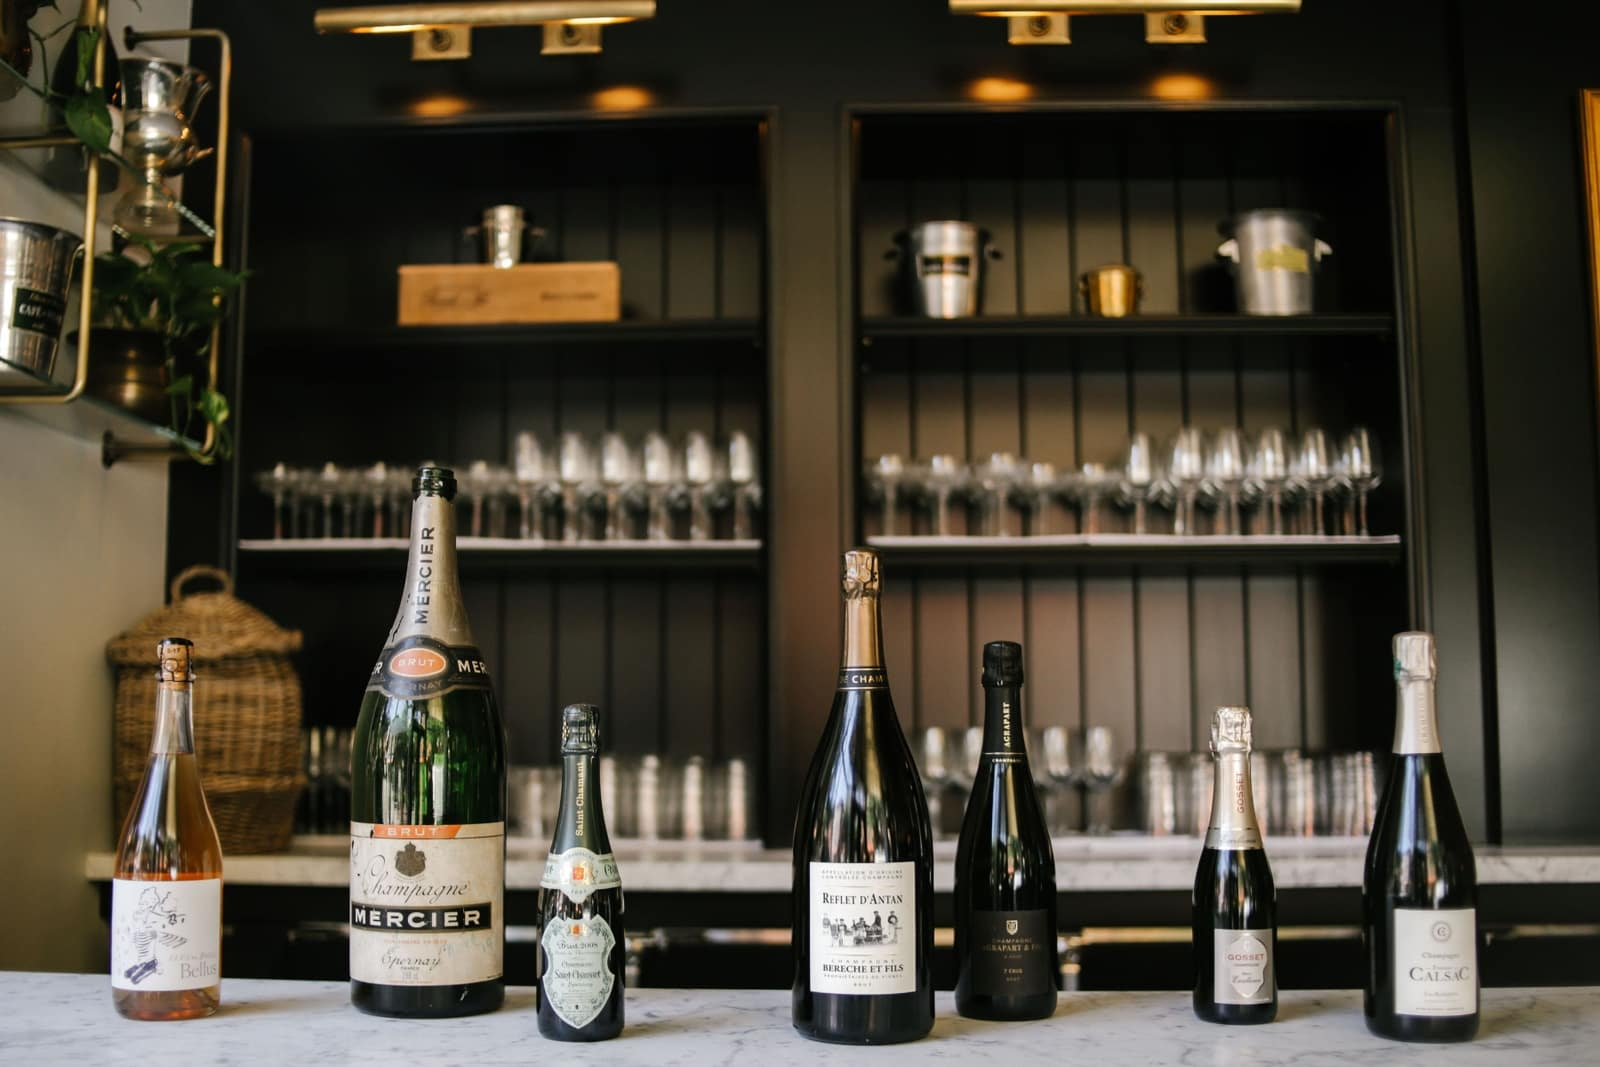 This All-Black Champagne & Oyster Bar in NYC Will Make Us Want To Toast Before New Year's Eve! oyster bar This All-Black Champagne & Oyster Bar in NYC Will Make Us Want To Toast Before New Year's Eve! 7